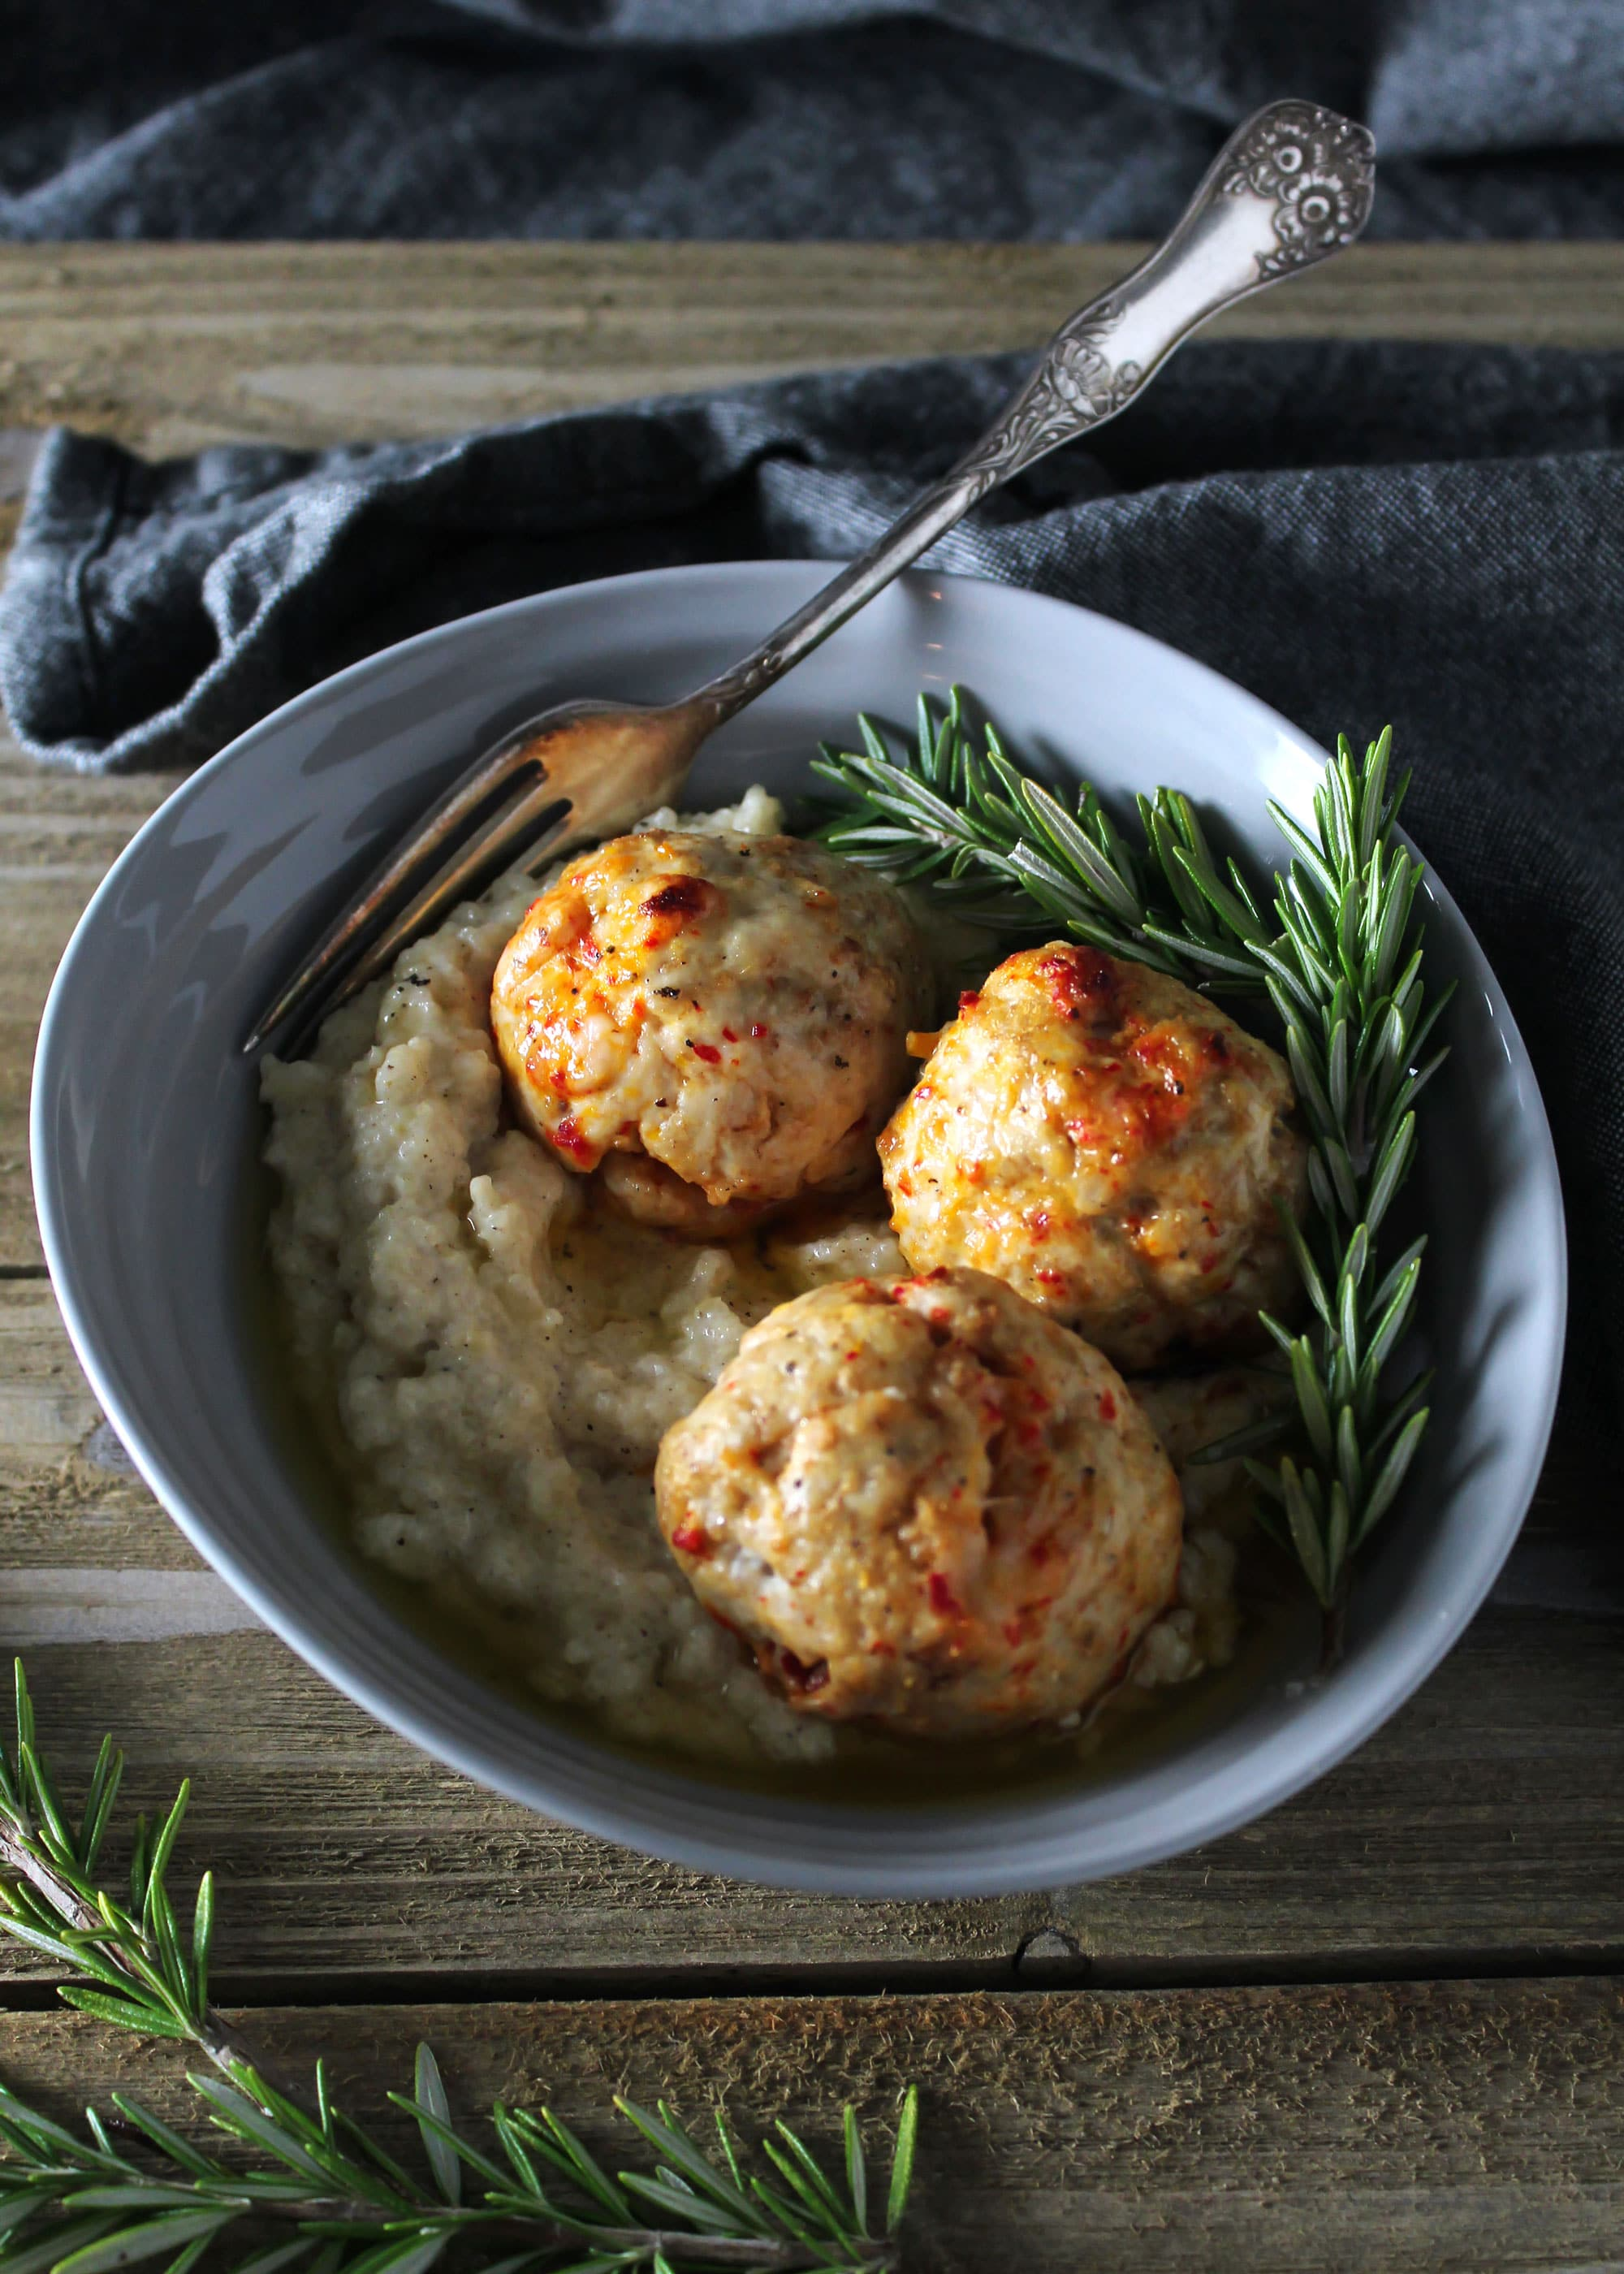 Pimento cheese meatballs on top of brown butter grits with rosemary sprigs in a gray bowl.